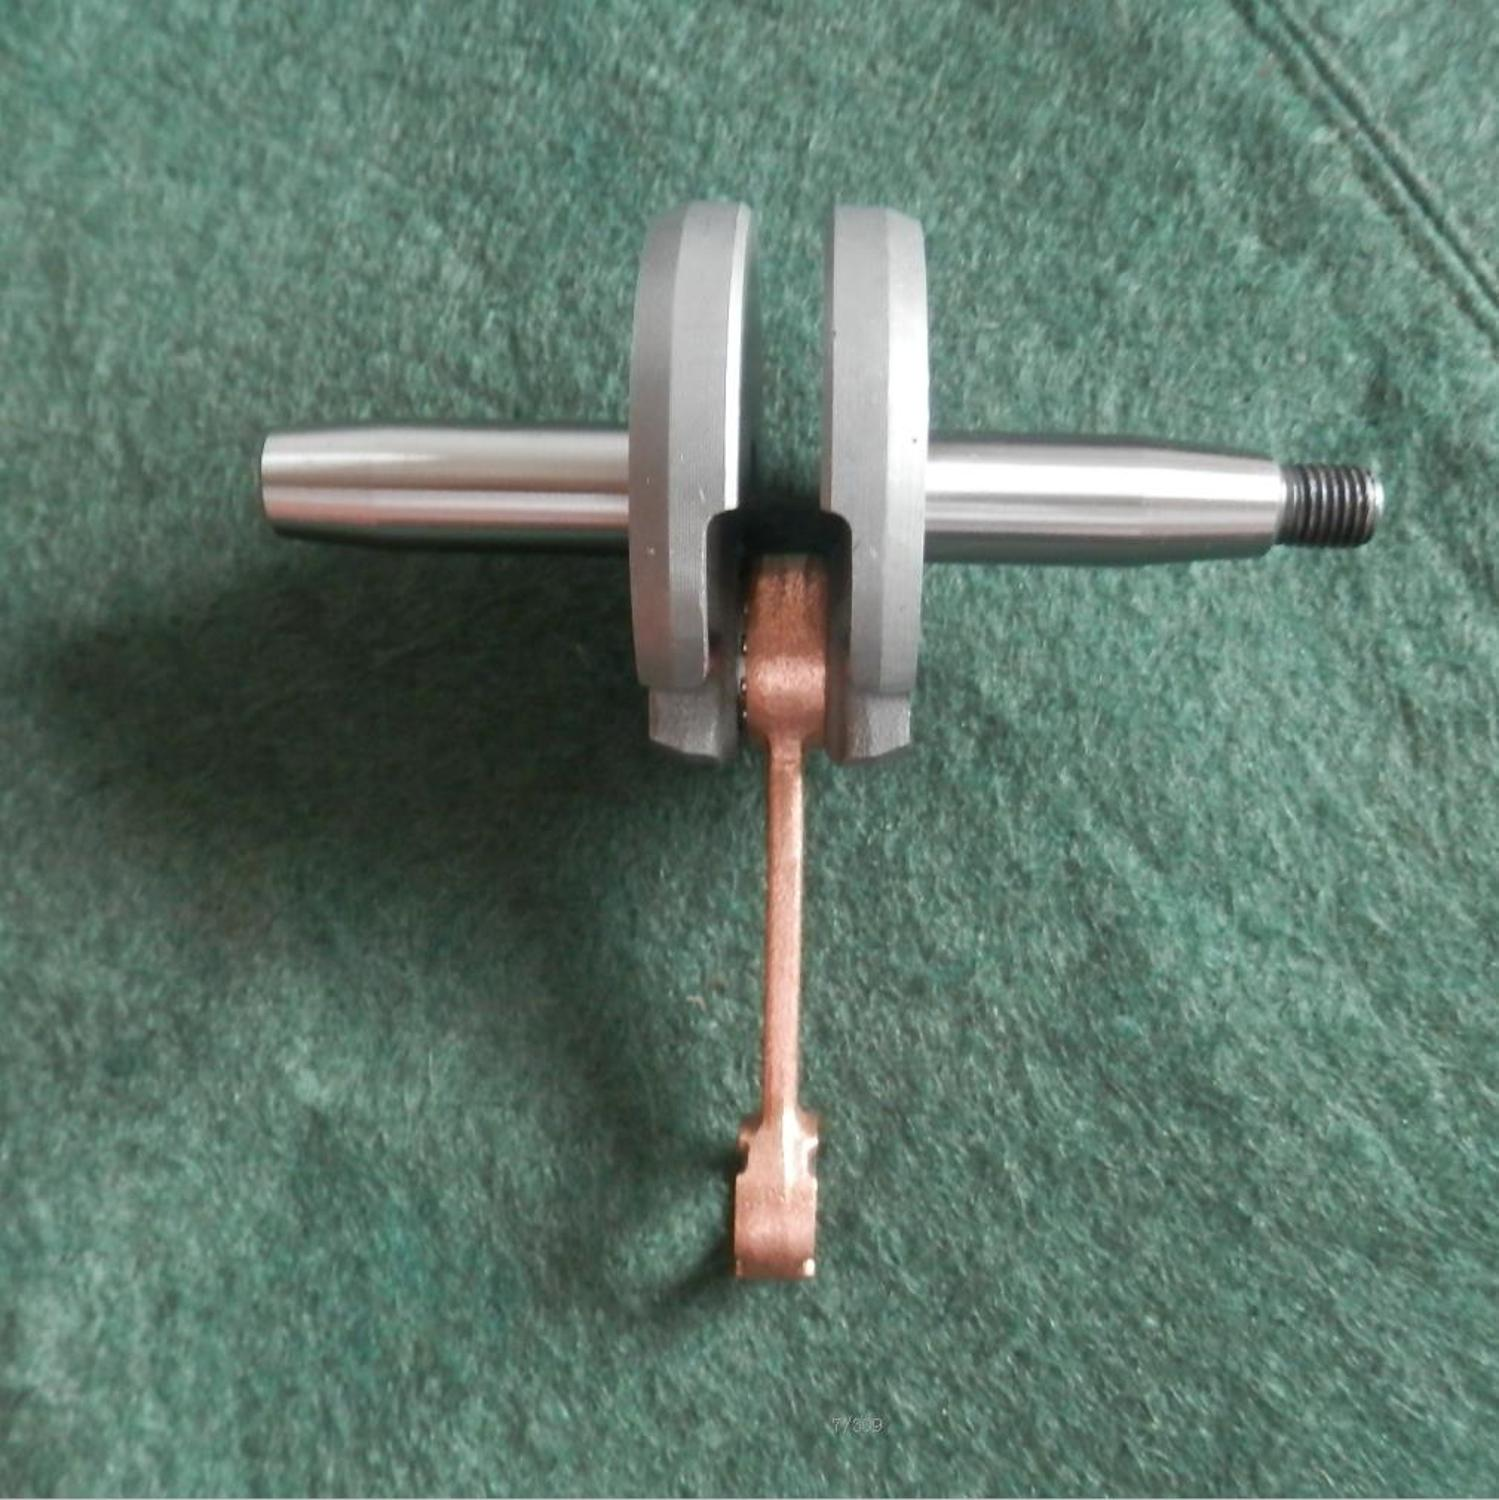 CNC tailstock for rotary axis A axis 4th axis cnc router machine 50mm engraving milling